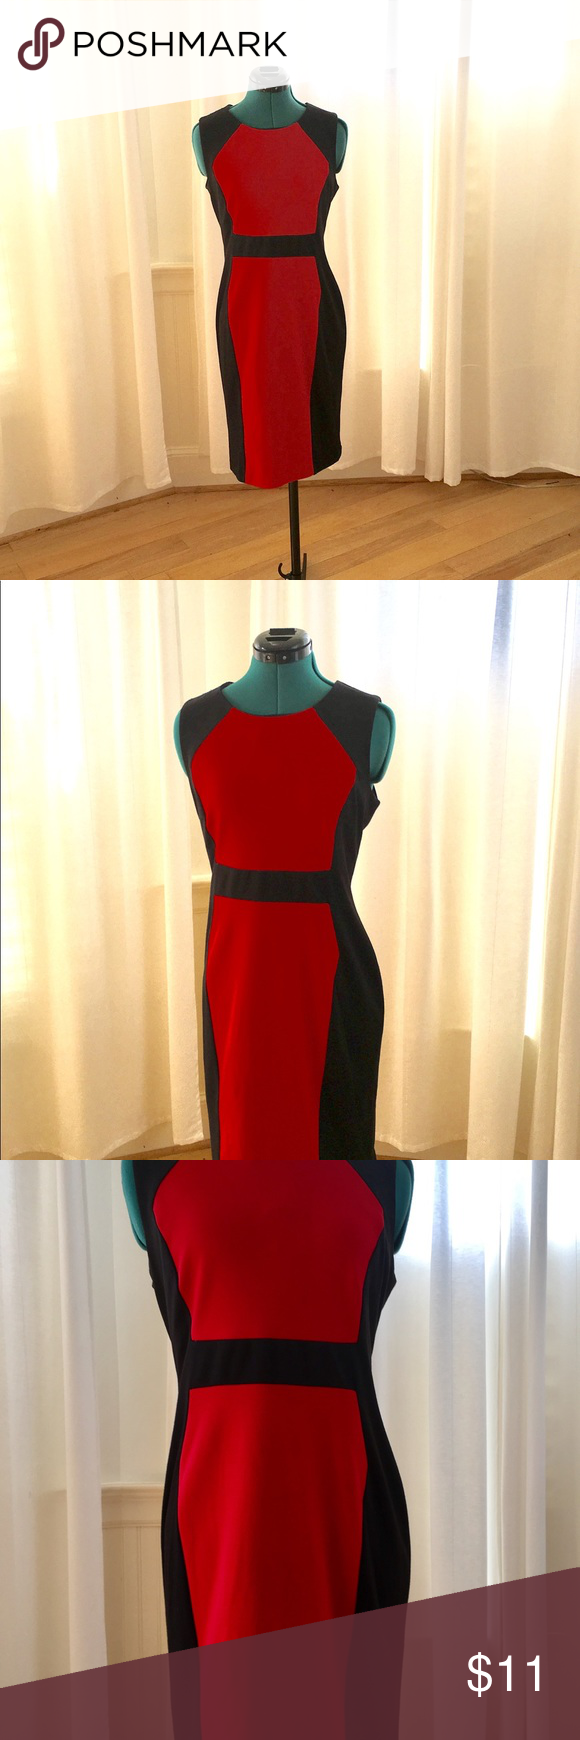 Size 8 evening dress to hide